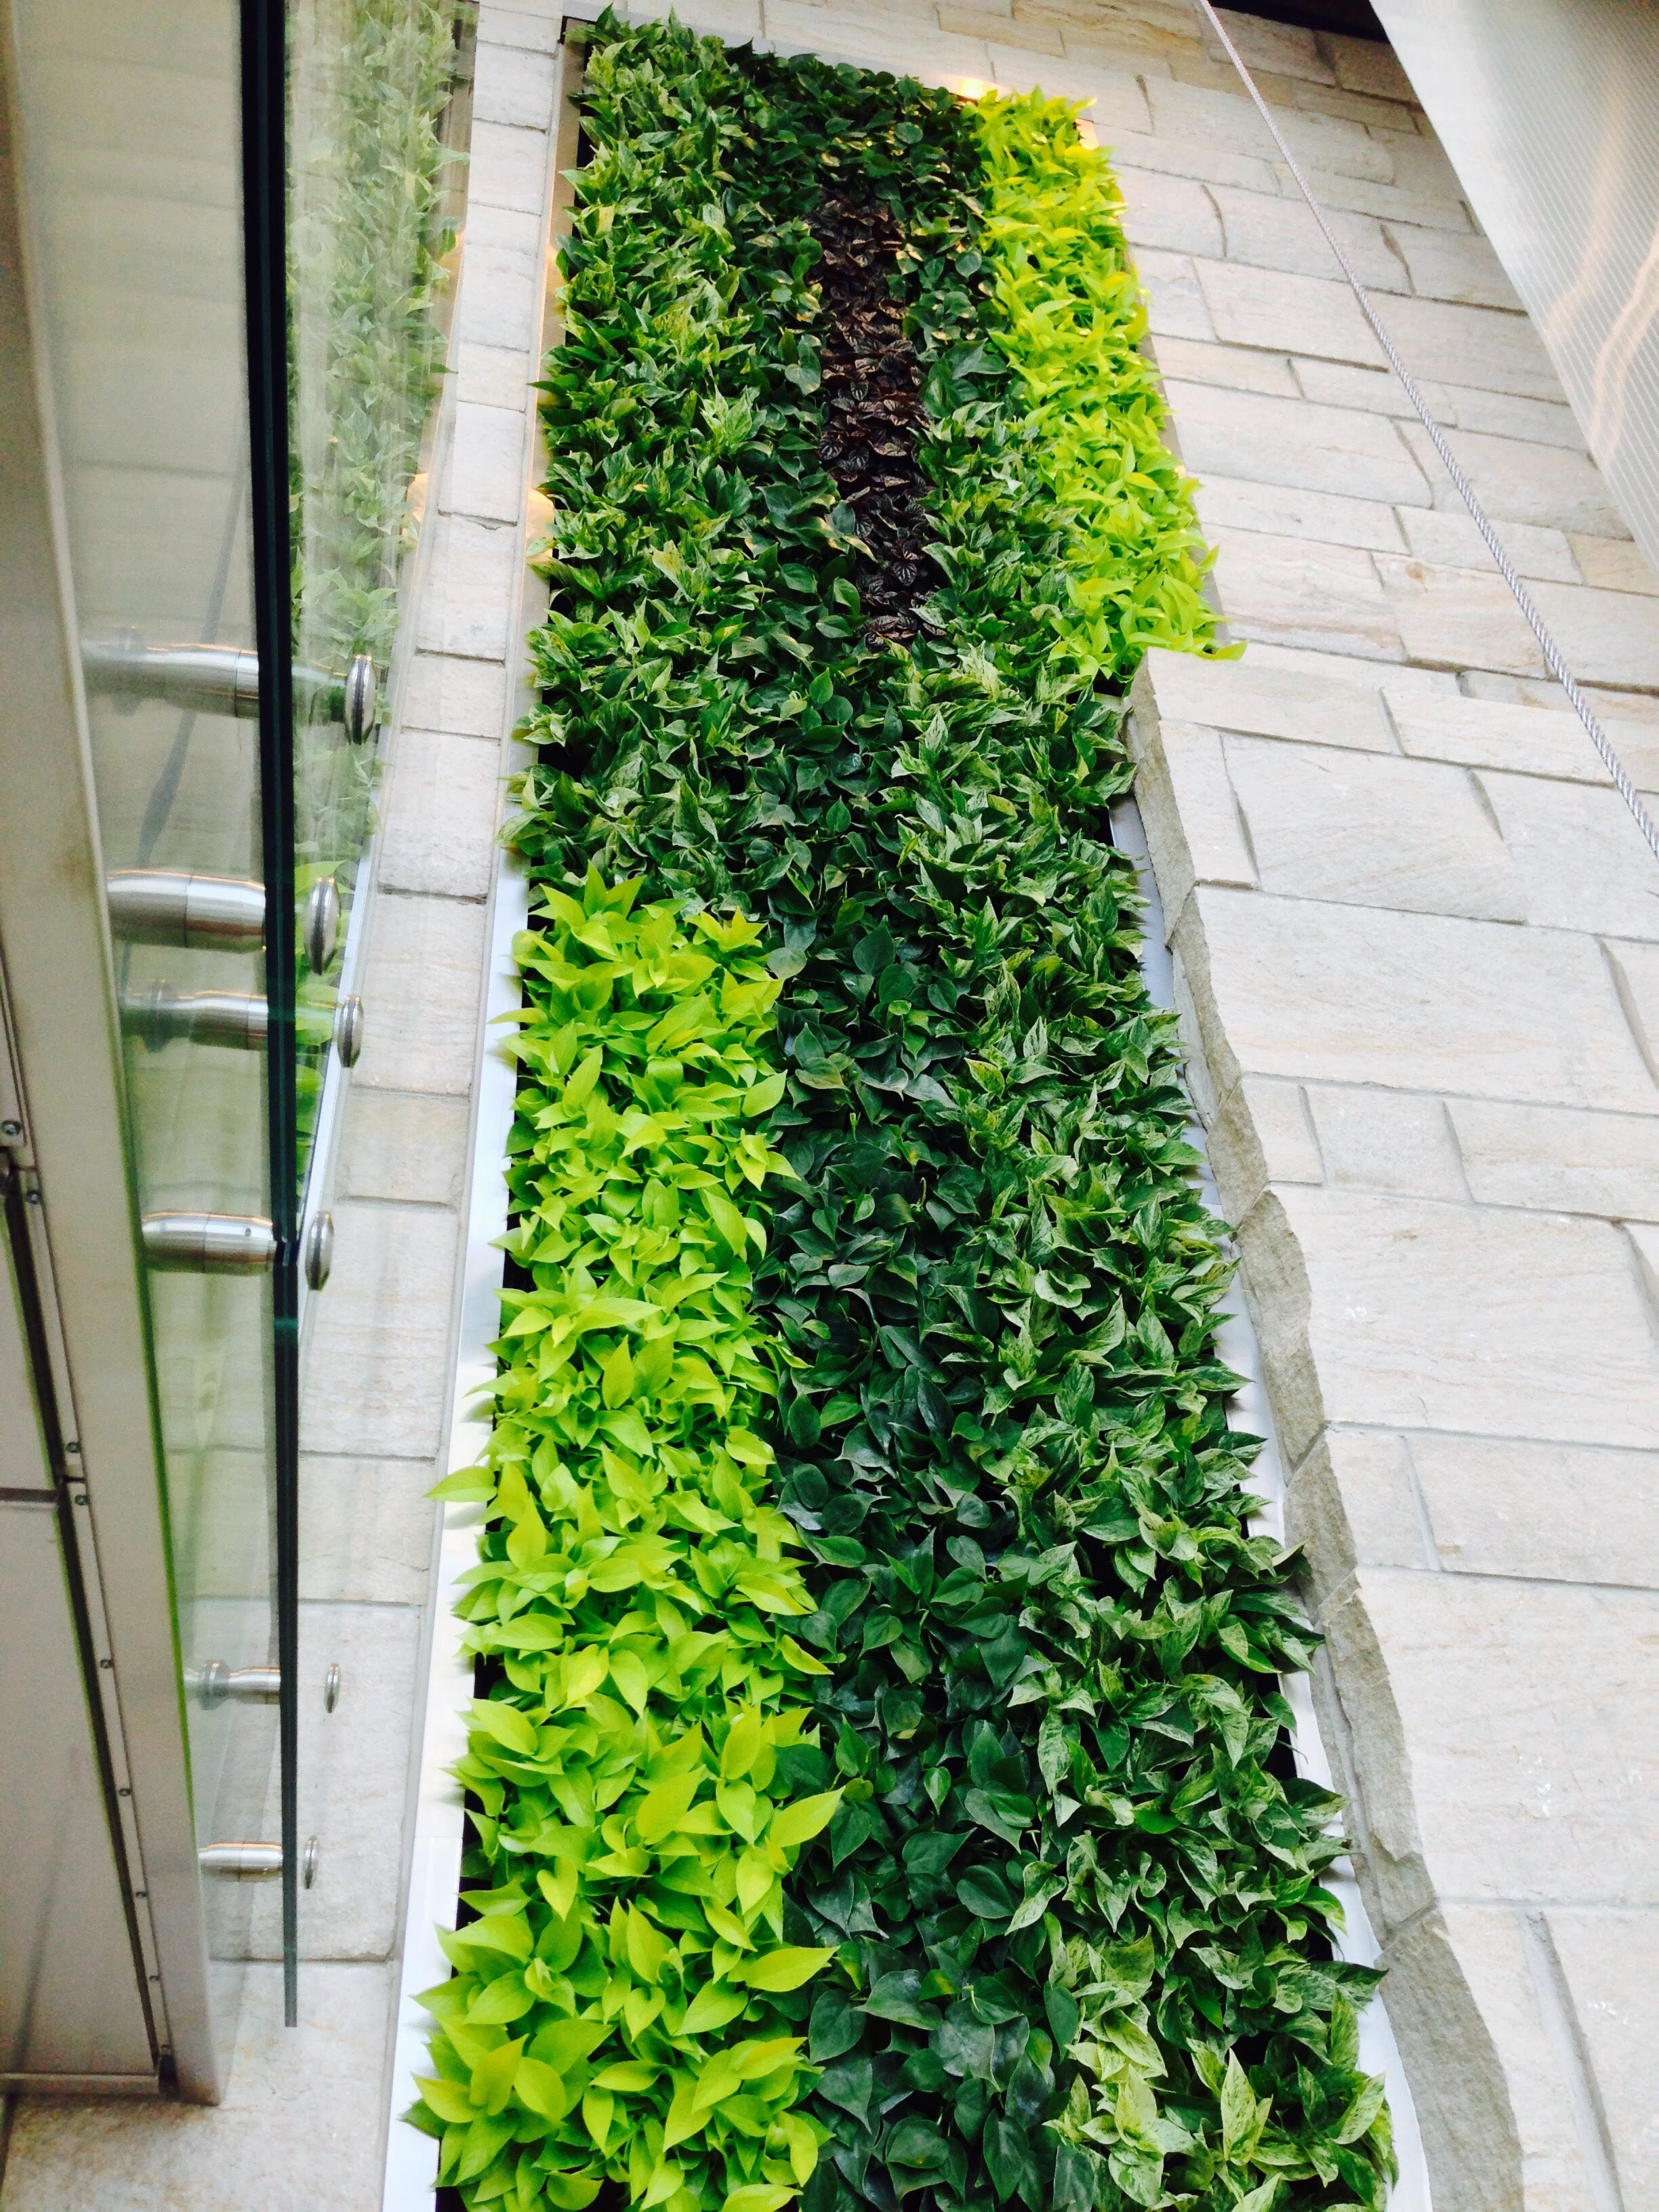 Interior Walls - Our indoor Living Walls are engineered to be an attractive and efficient method to bring the art of nature indoors, providing cleaner air, increased well-being, and more.